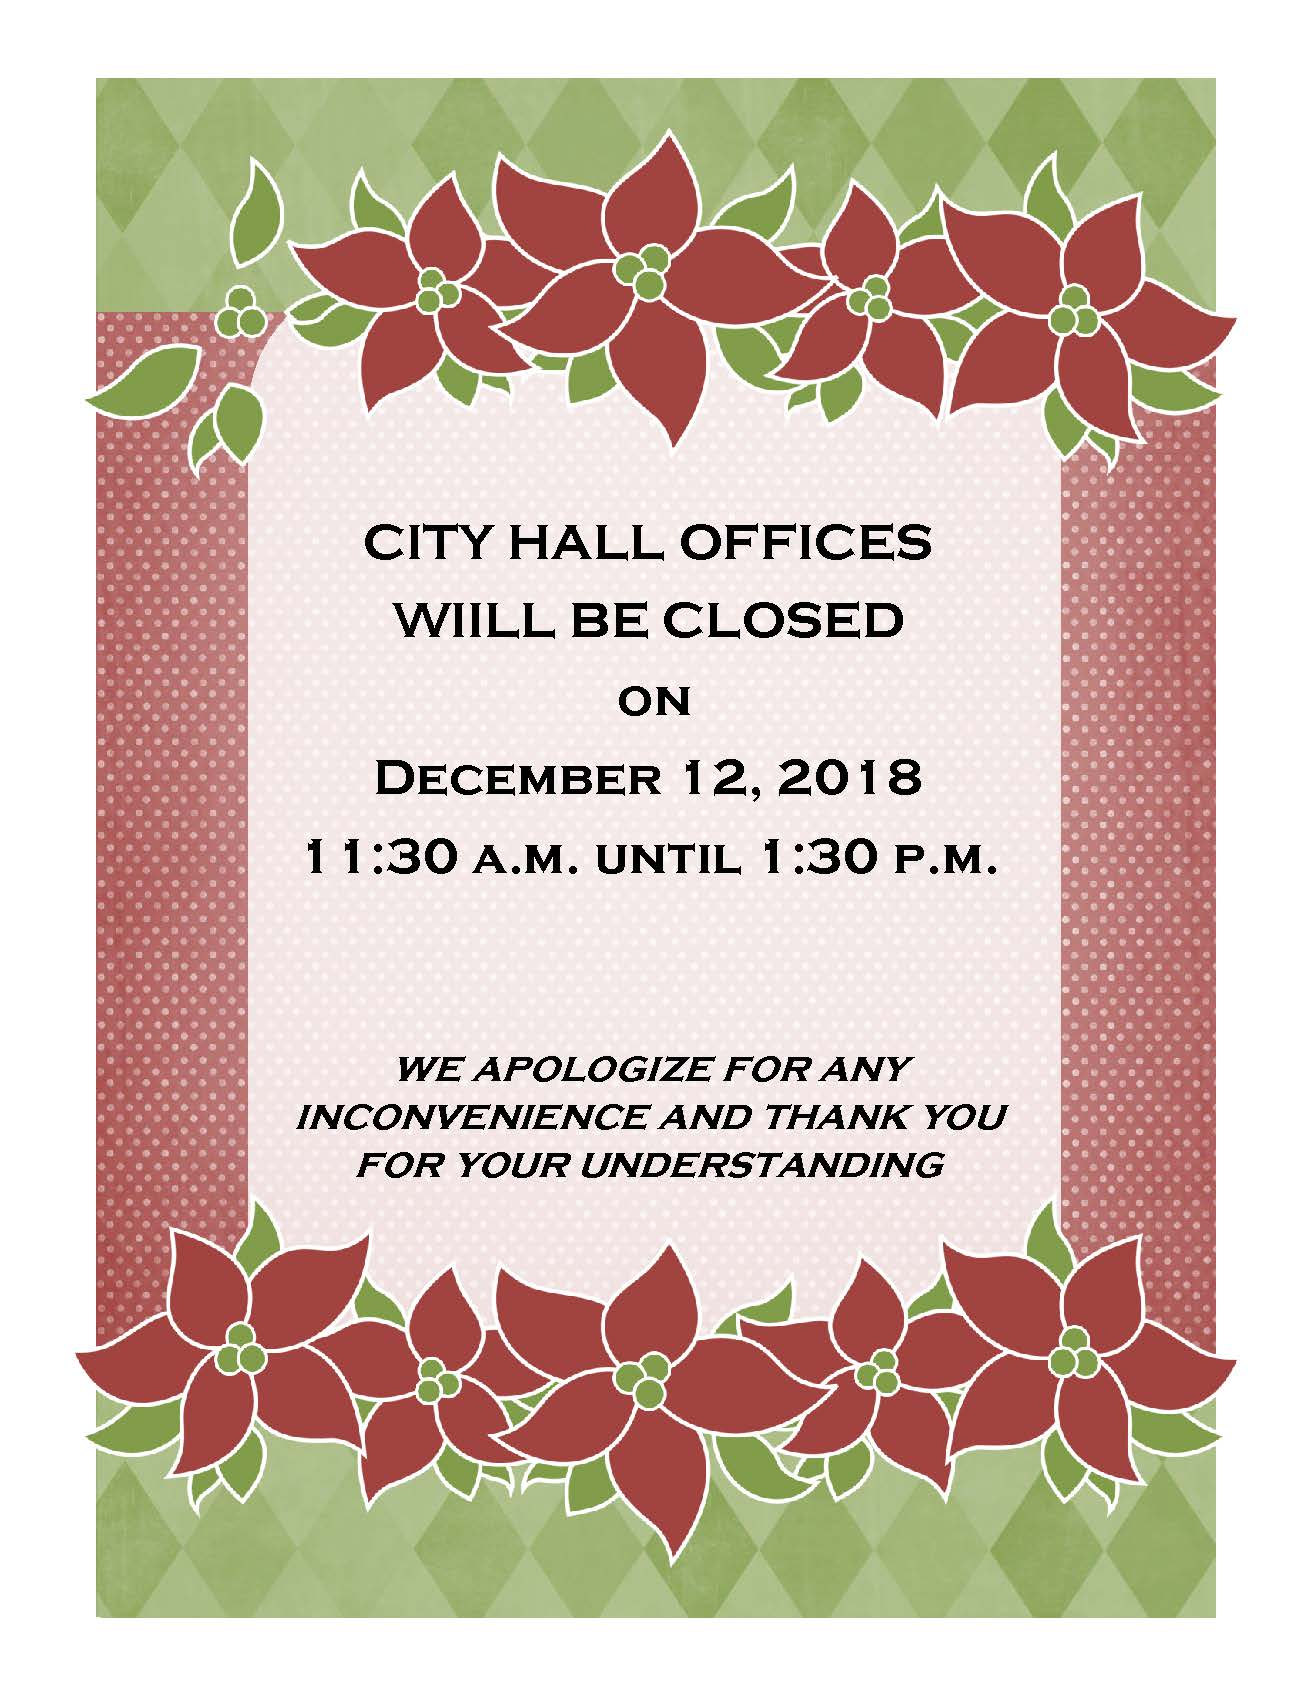 Flyer City Hall offices will be closed on Wednesday, December 12, 2018 from 11:30am until 1:30pm